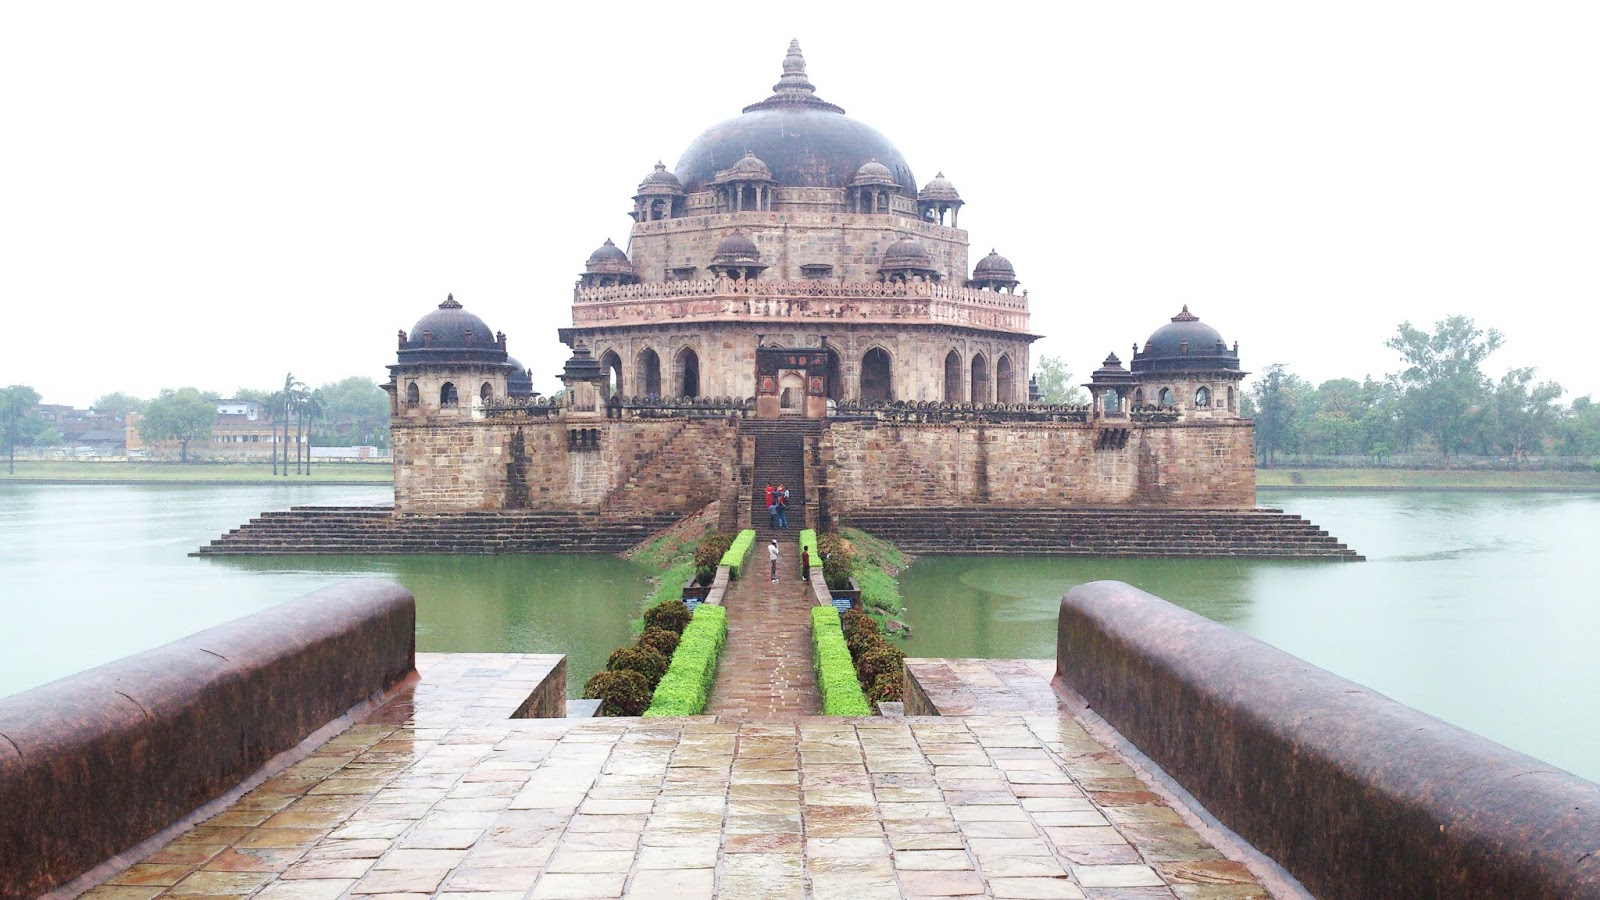 Tomb of Sher Shah Suri, Sasaram, Bihar  IMAGES, GIF, ANIMATED GIF, WALLPAPER, STICKER FOR WHATSAPP & FACEBOOK